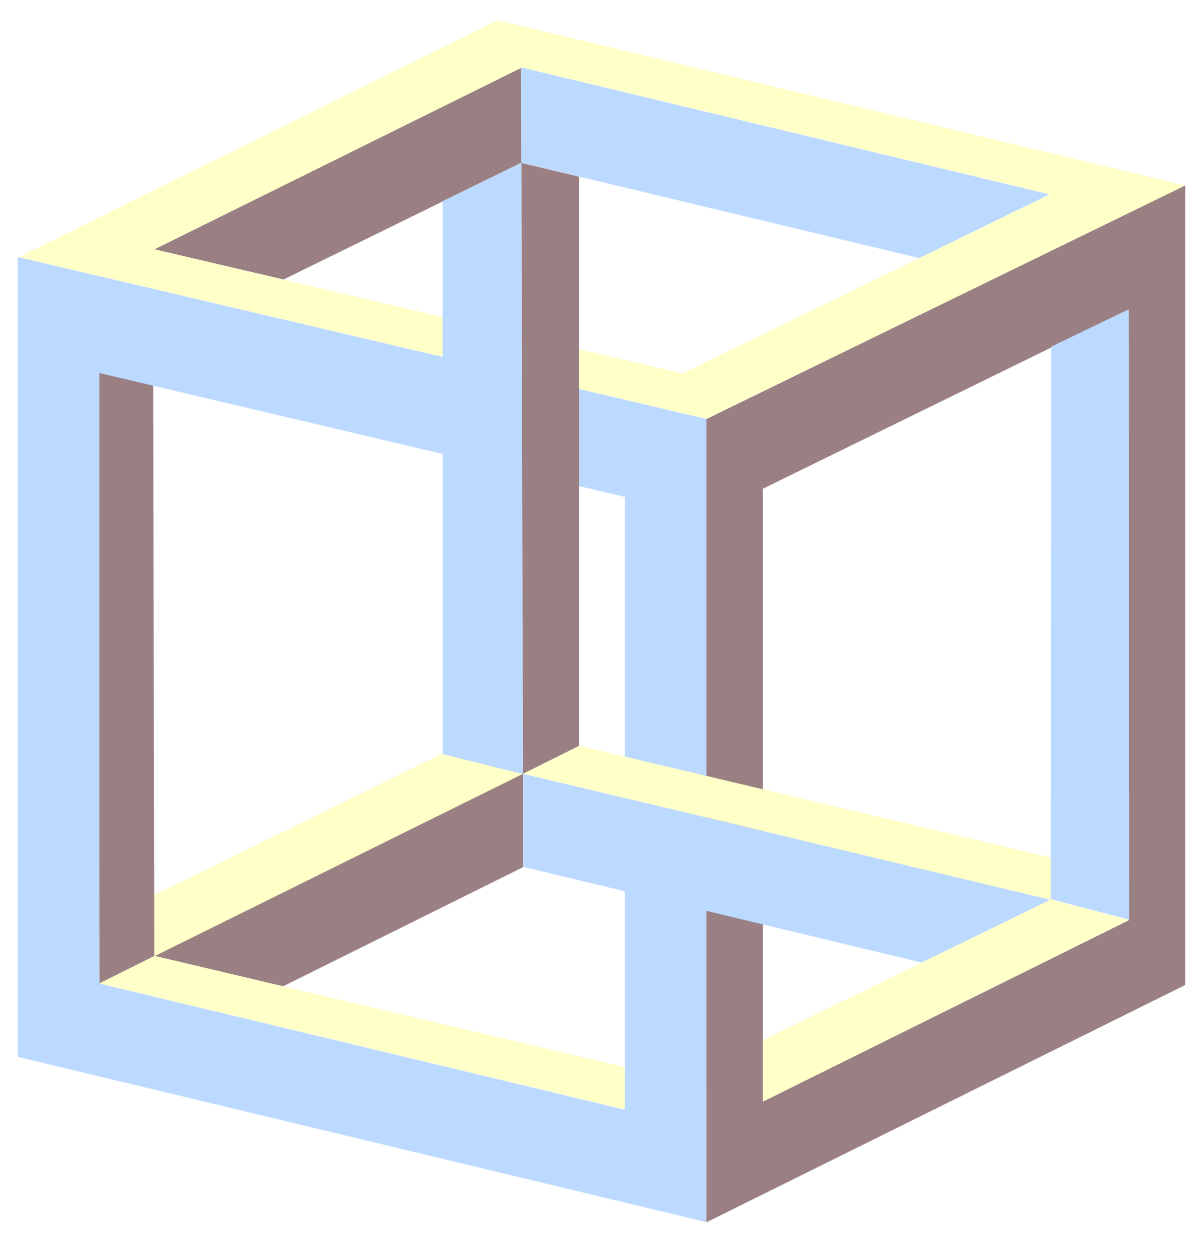 Cube Free PNG 18961